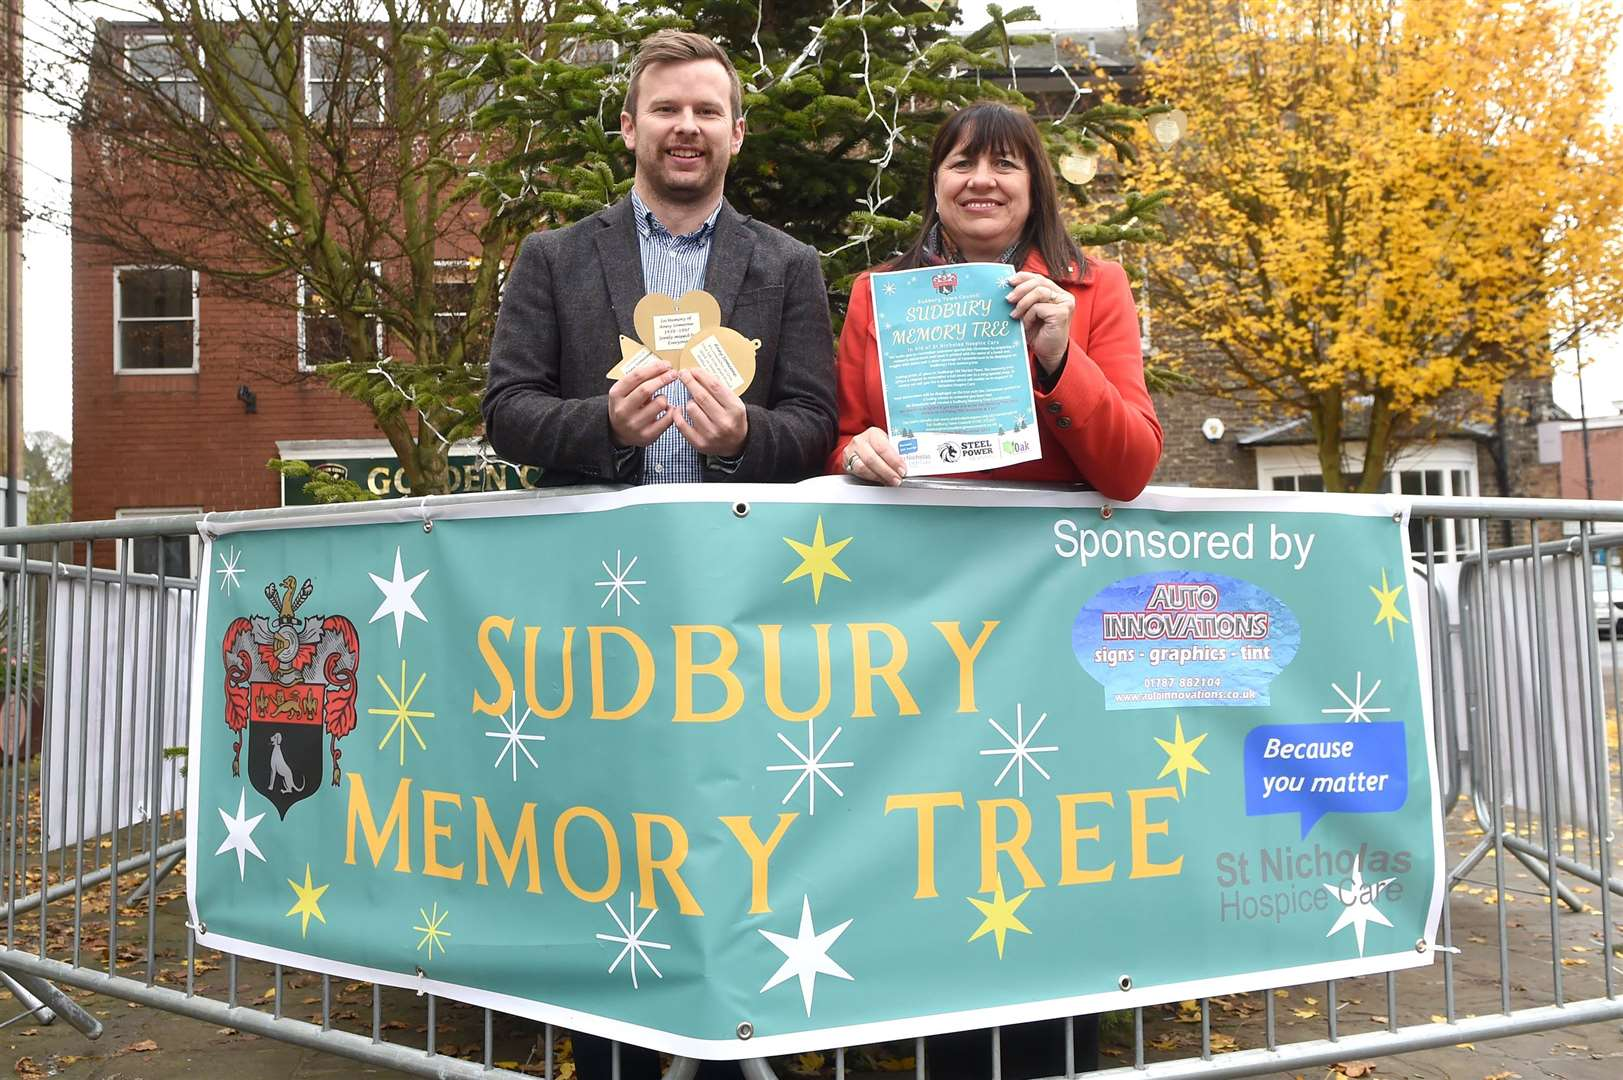 The Sudbury Memory Tree is back up for 2019...Pictured: George Chilvers from St Nicholas Hospice Care and Teresa Elford from Sudbury Town Council...PICTURE: Mecha Morton .... (22563471)